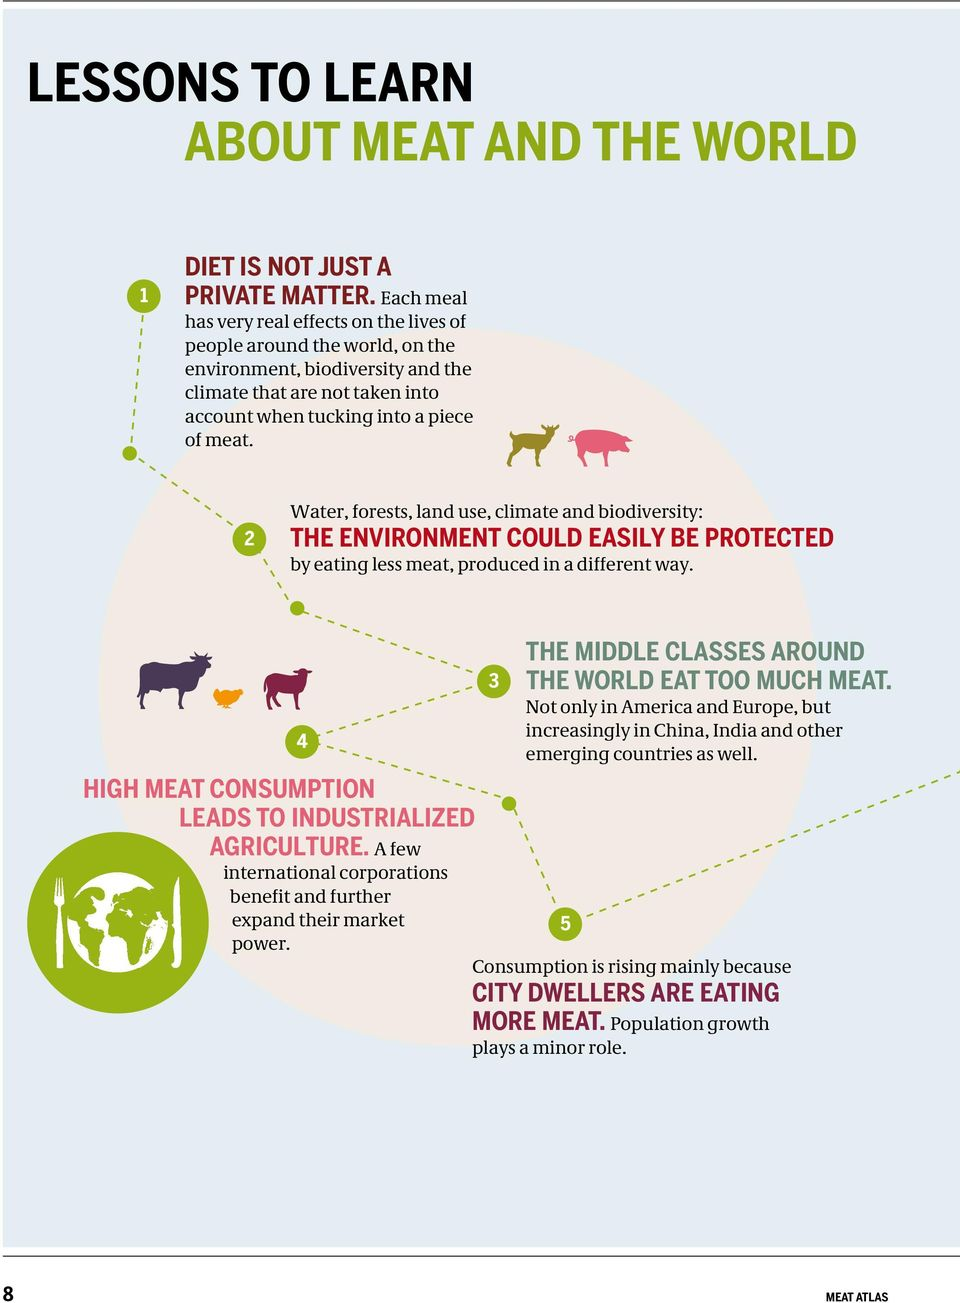 2 Water, forests, land use, climate and biodiversity: THE ENVIRONMENT COULD EASILY BE PROTECTED by eating less meat, produced in a different way.